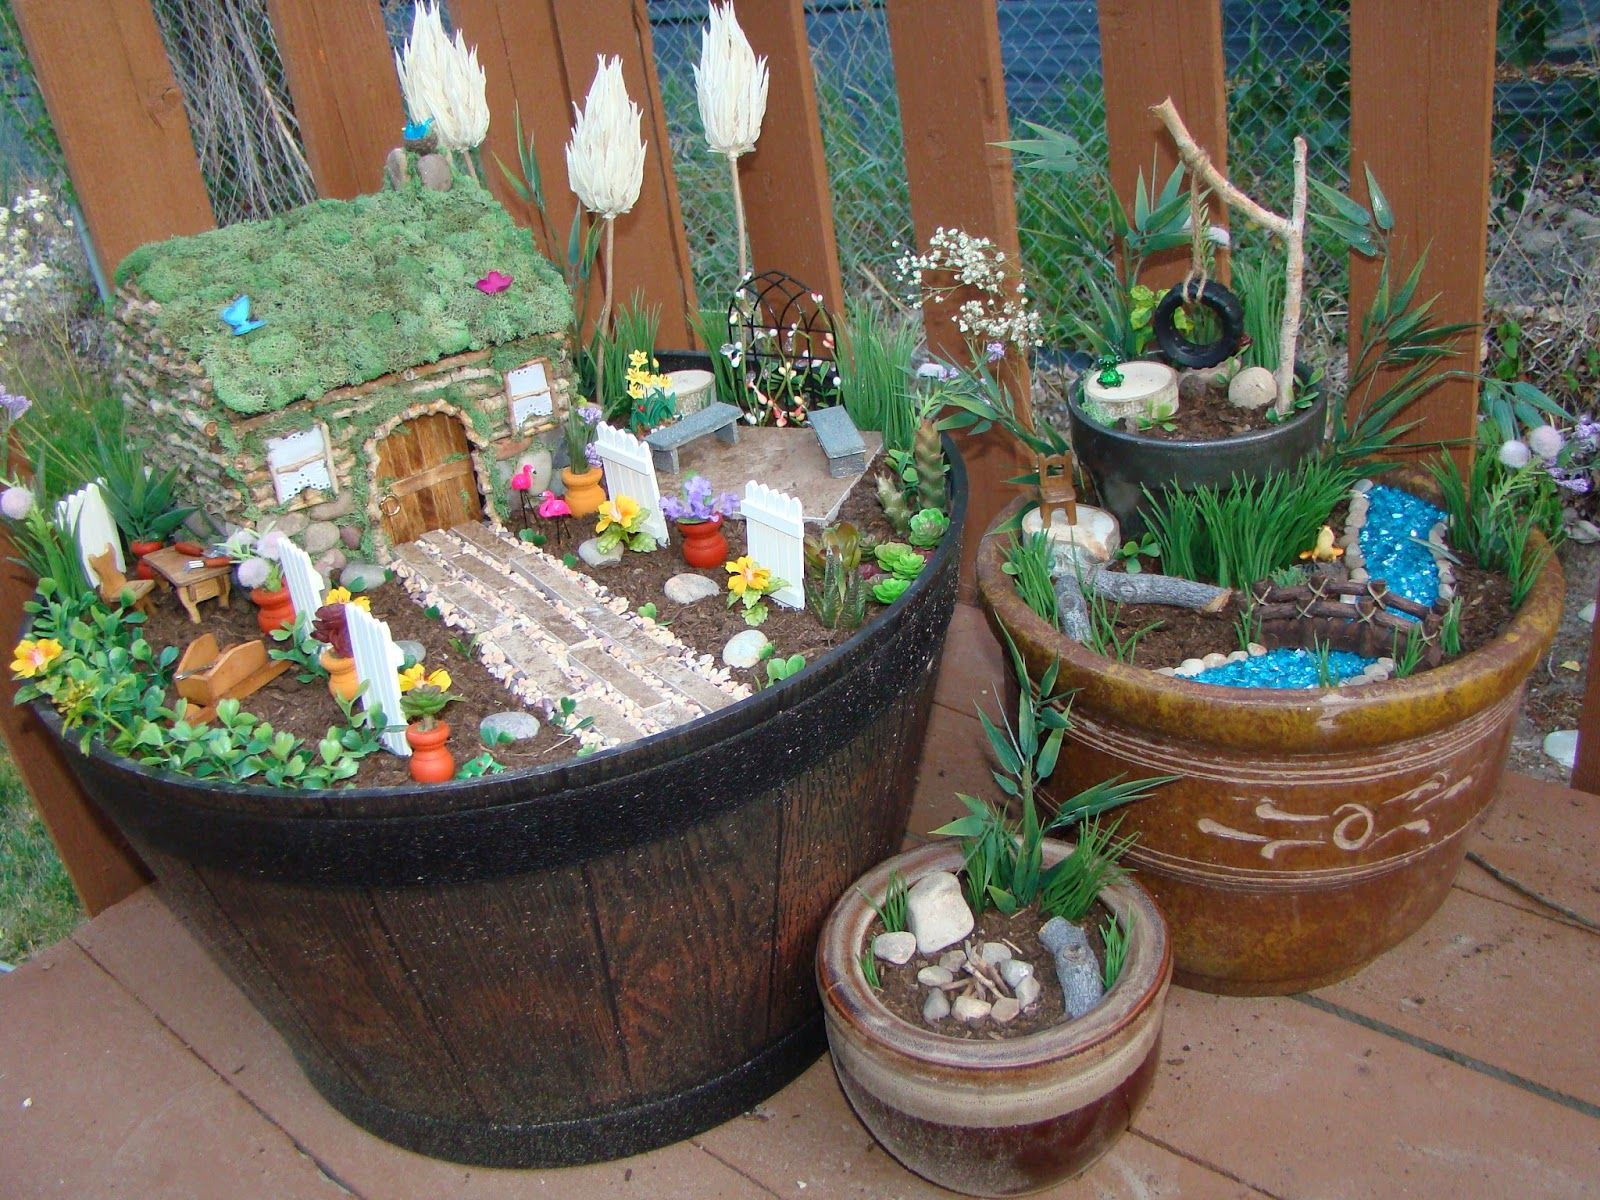 How To Make A Fairy Garden Goes Through Step By Step